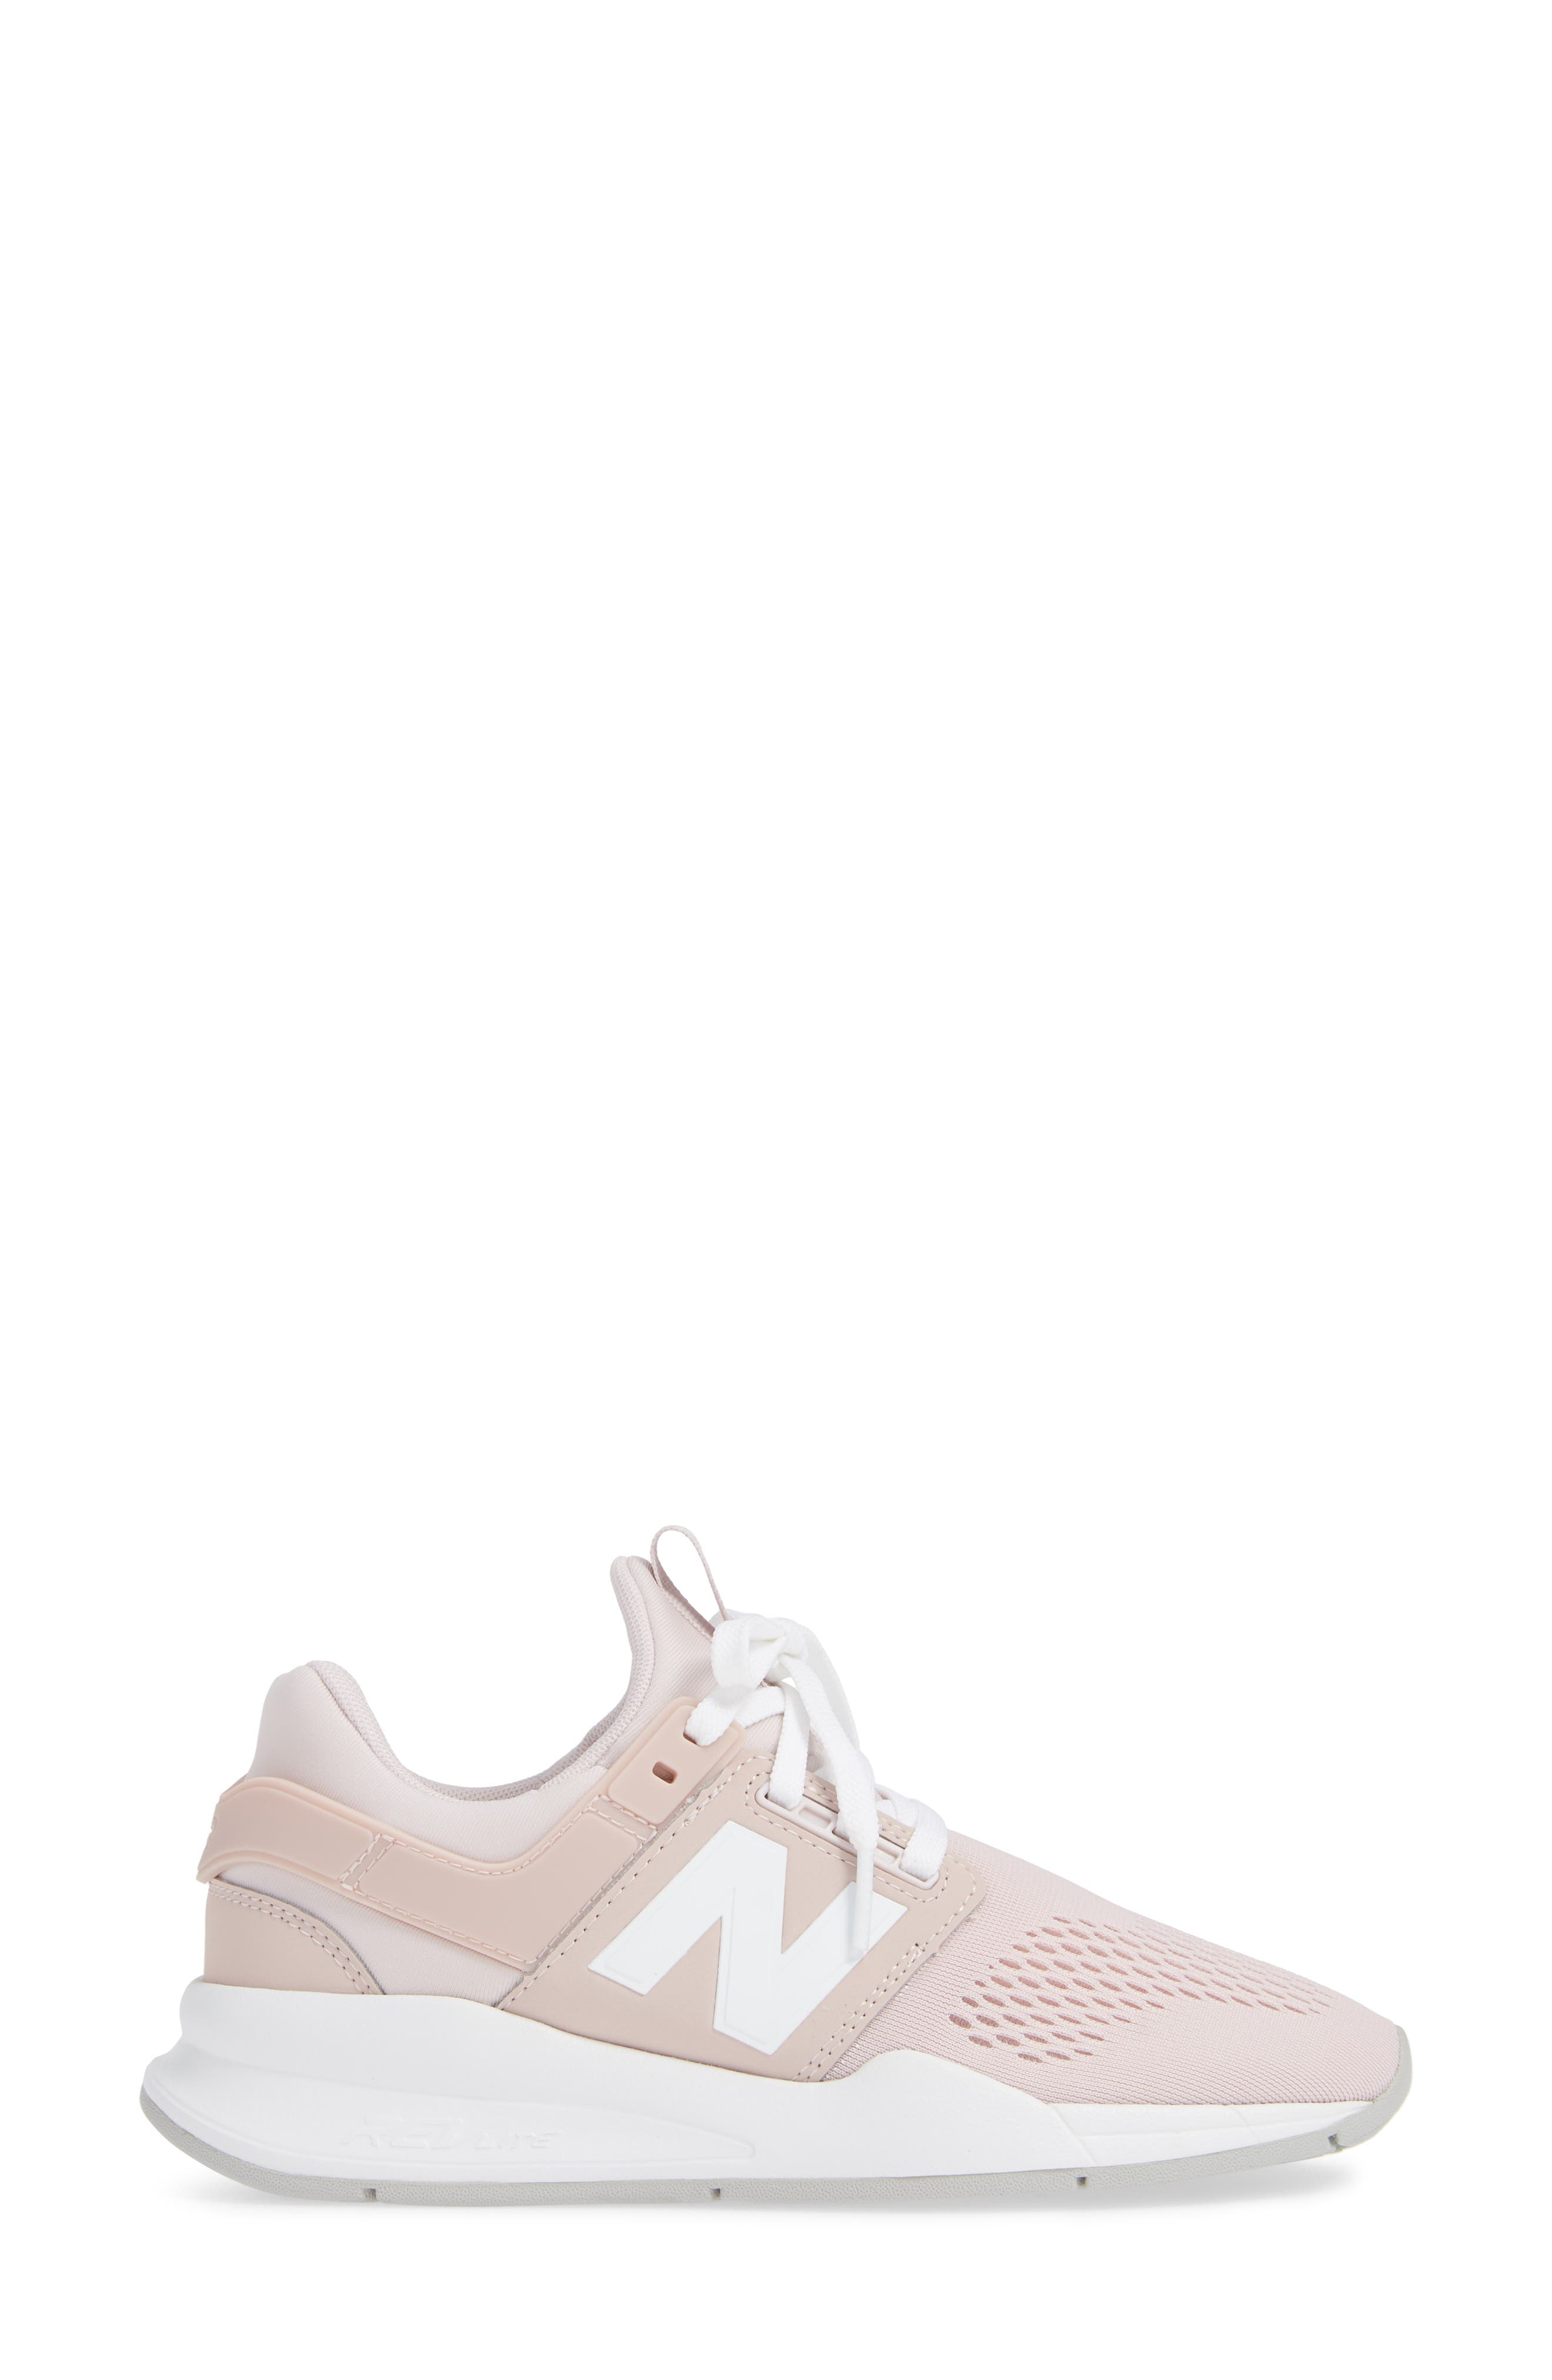 247 Sneaker,                             Alternate thumbnail 3, color,                             CONCH SHELL